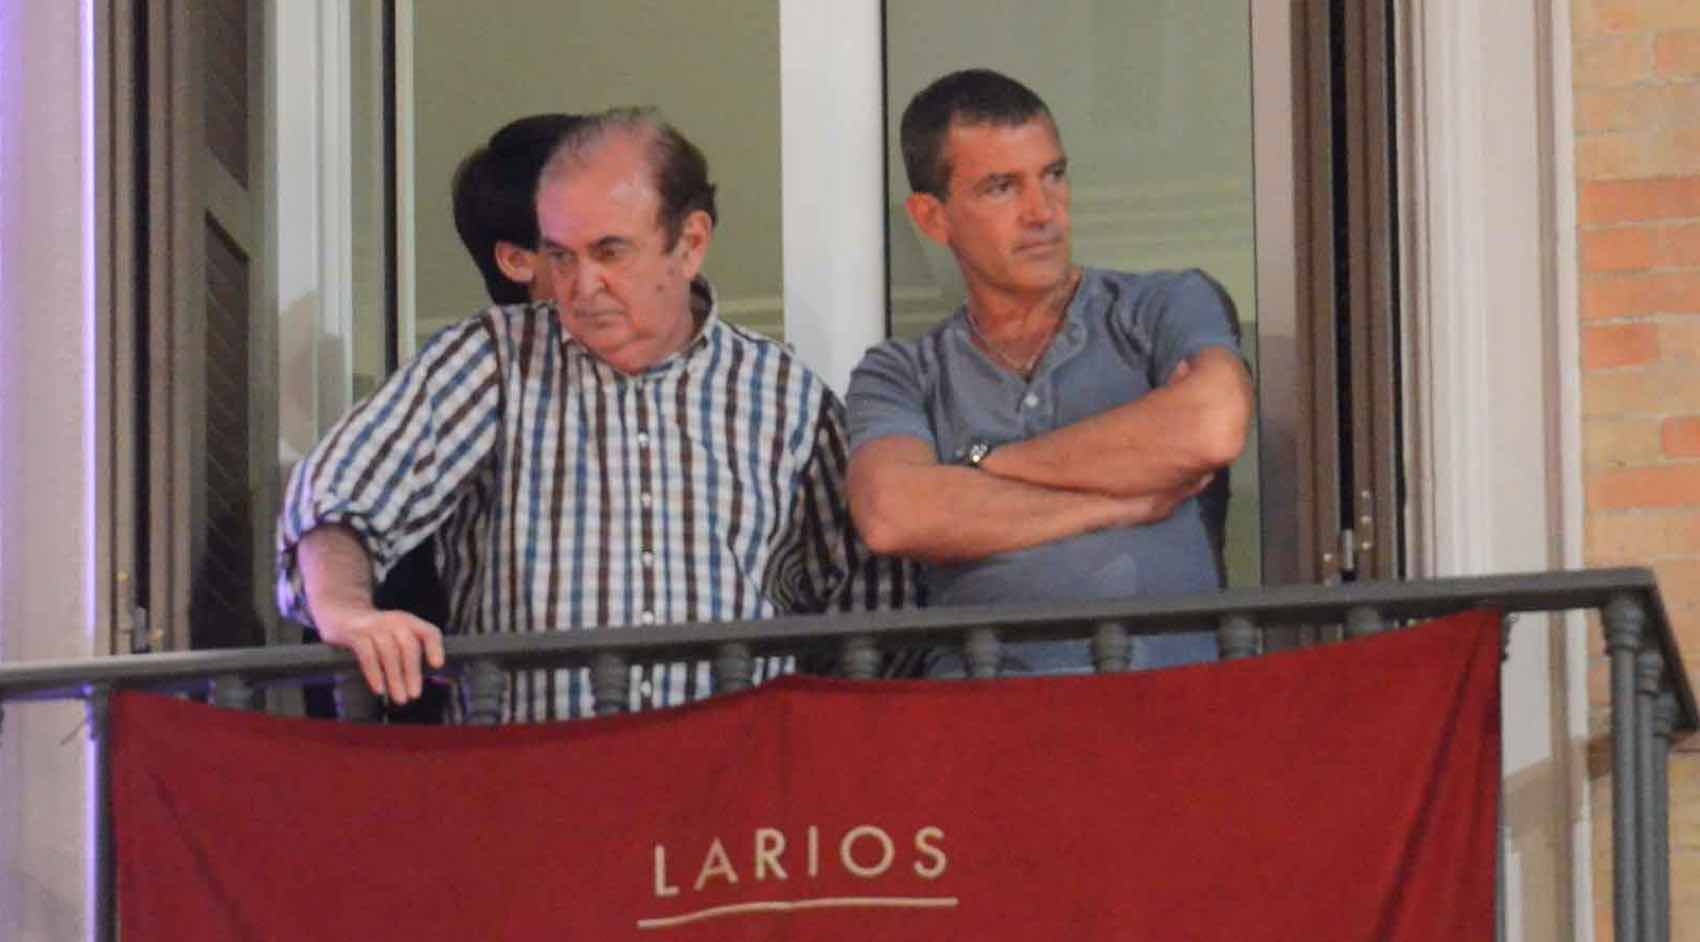 Home: Every easter Antonio Banderas enjoy Semana Santa in Malaga - and with a perfect view in Calle Larios